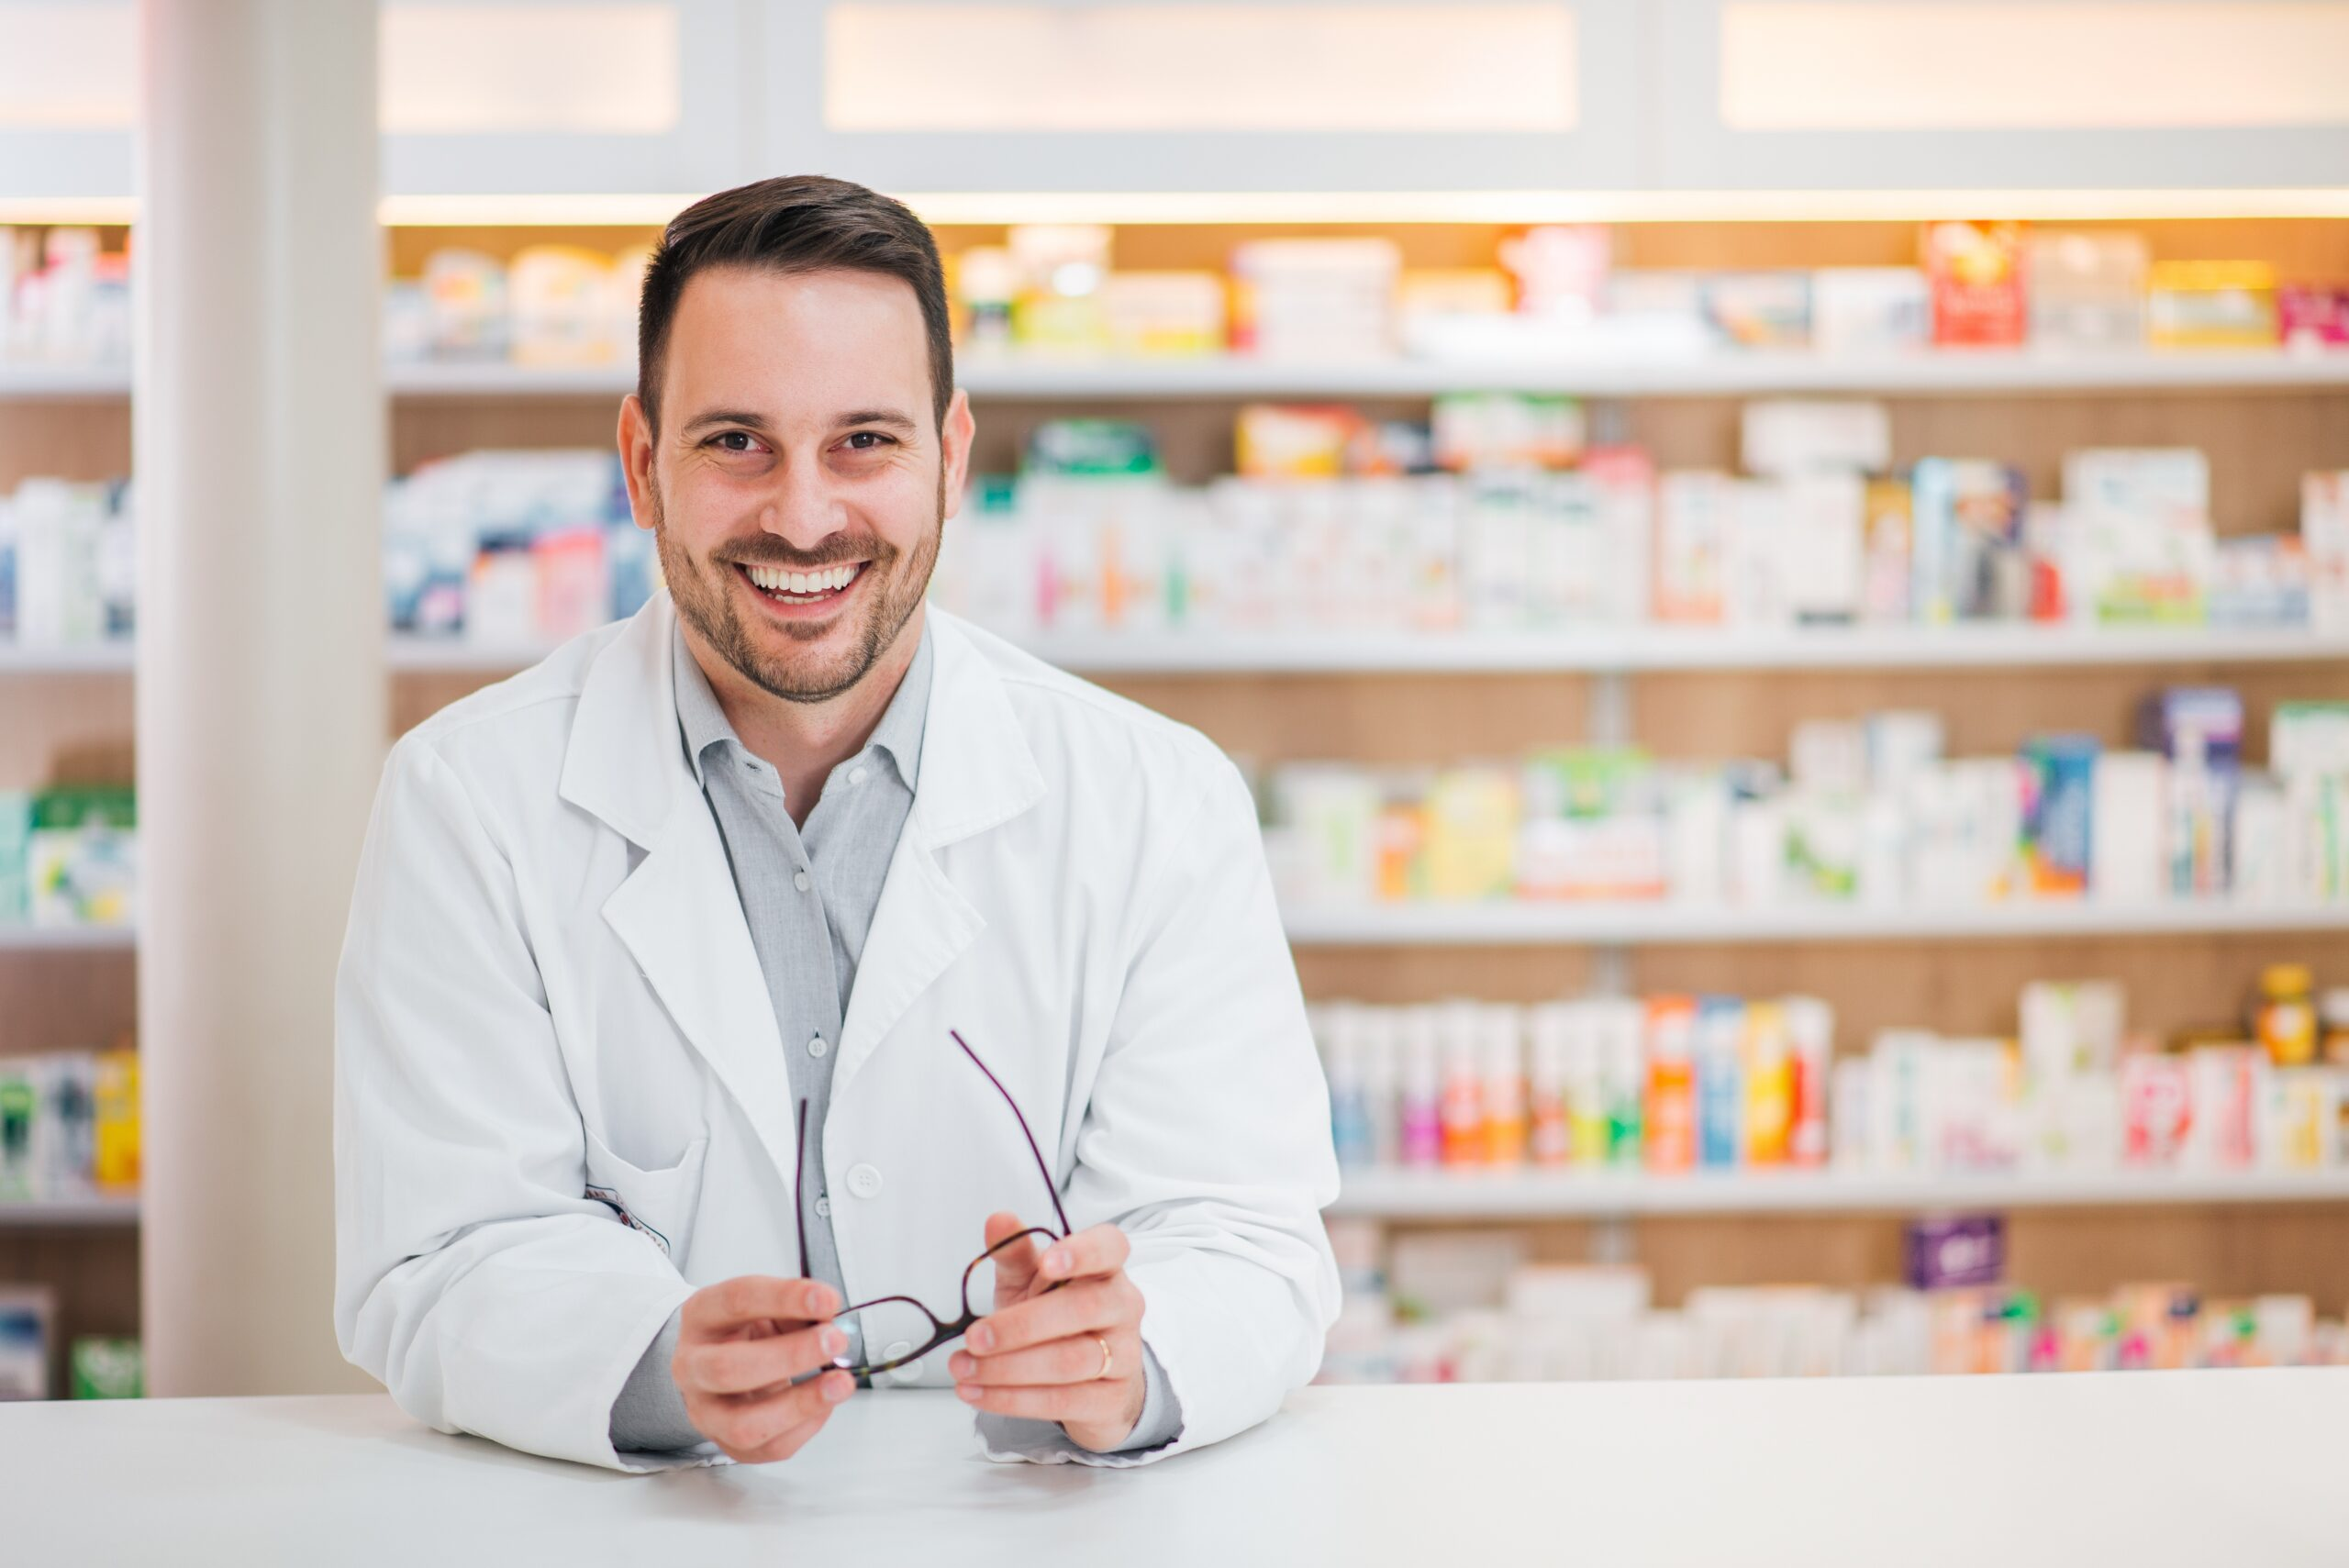 Portrait of a cheerful handsome pharmacist leaning on counter at drugstore.